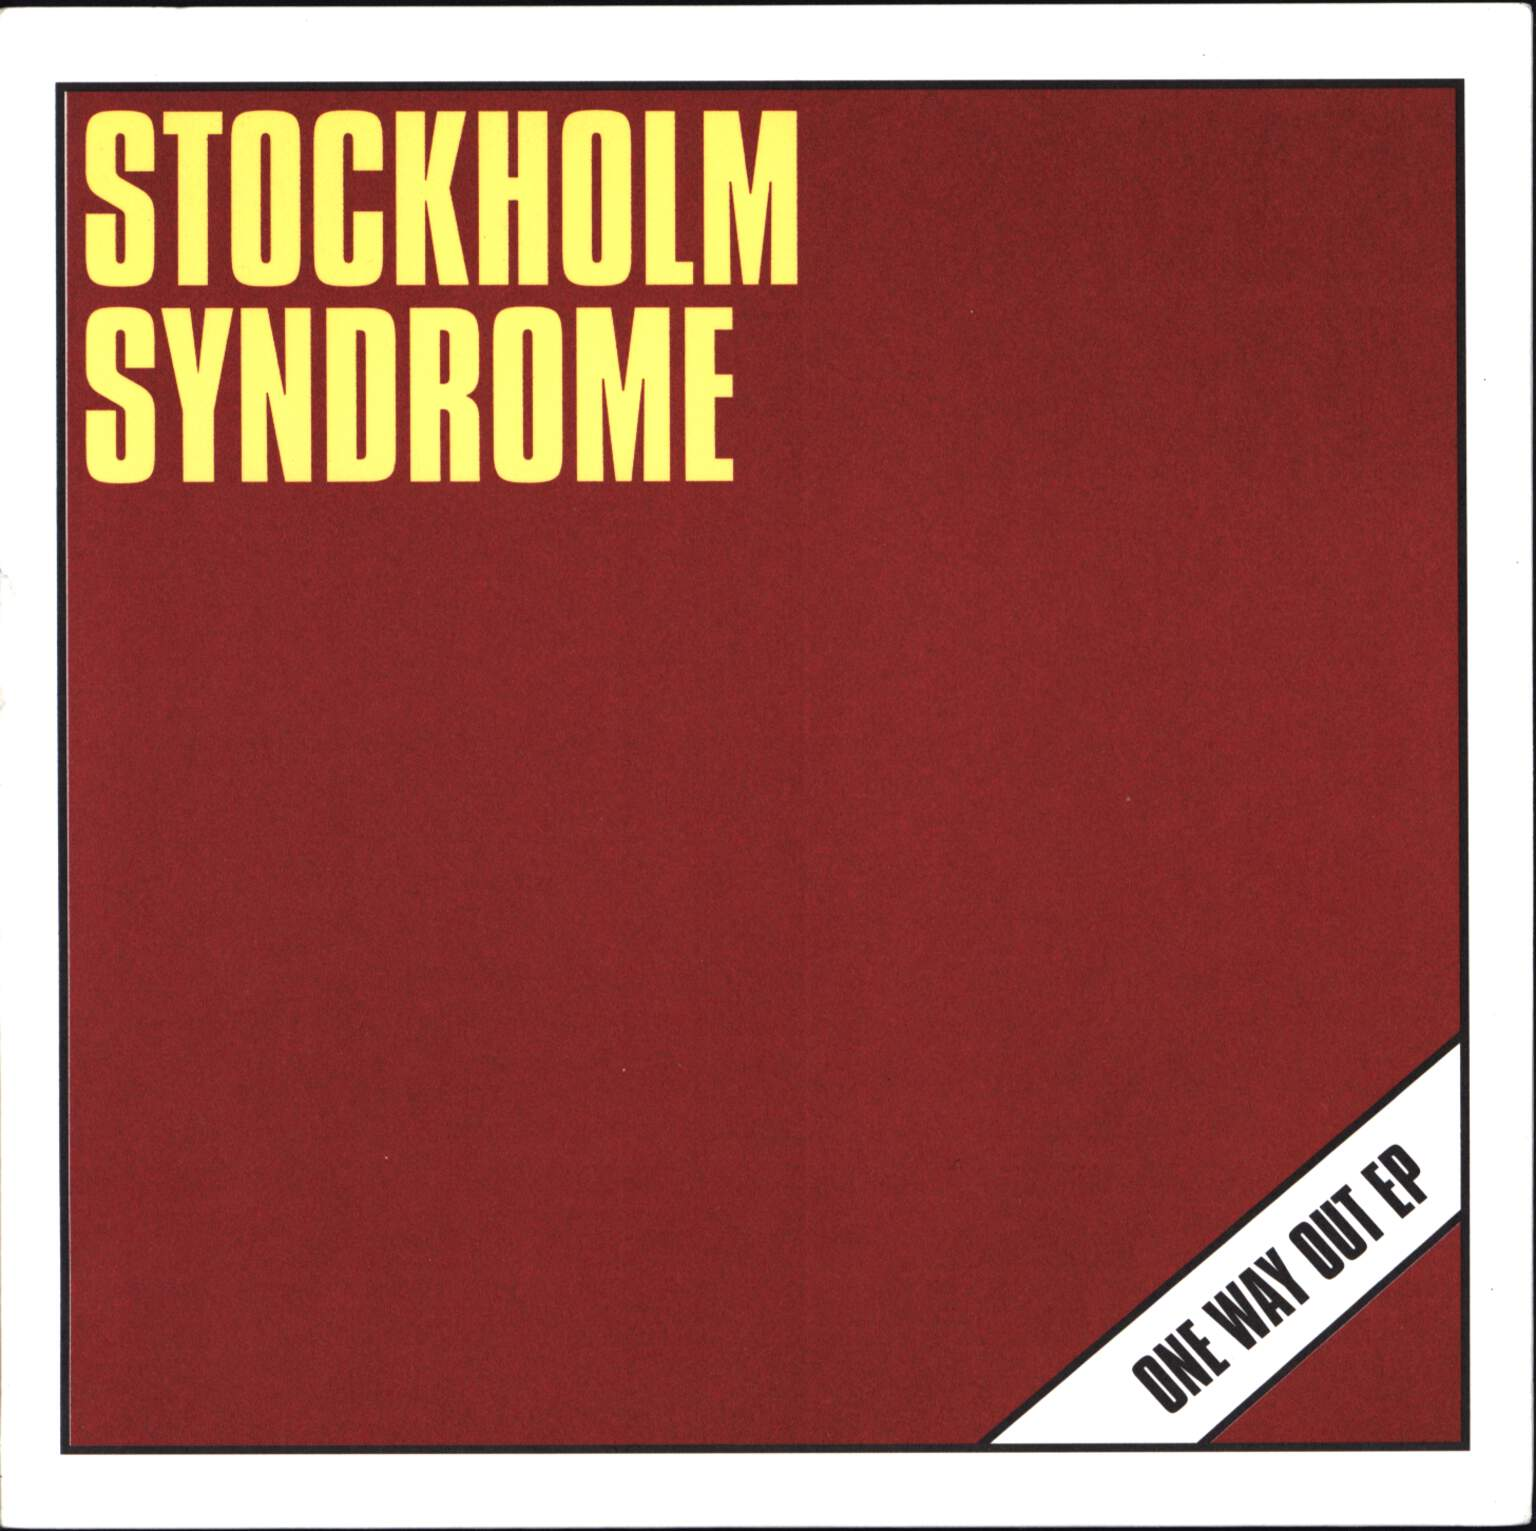 "Stockholm Syndrome: One Way Out EP, 7"" Single (Vinyl)"